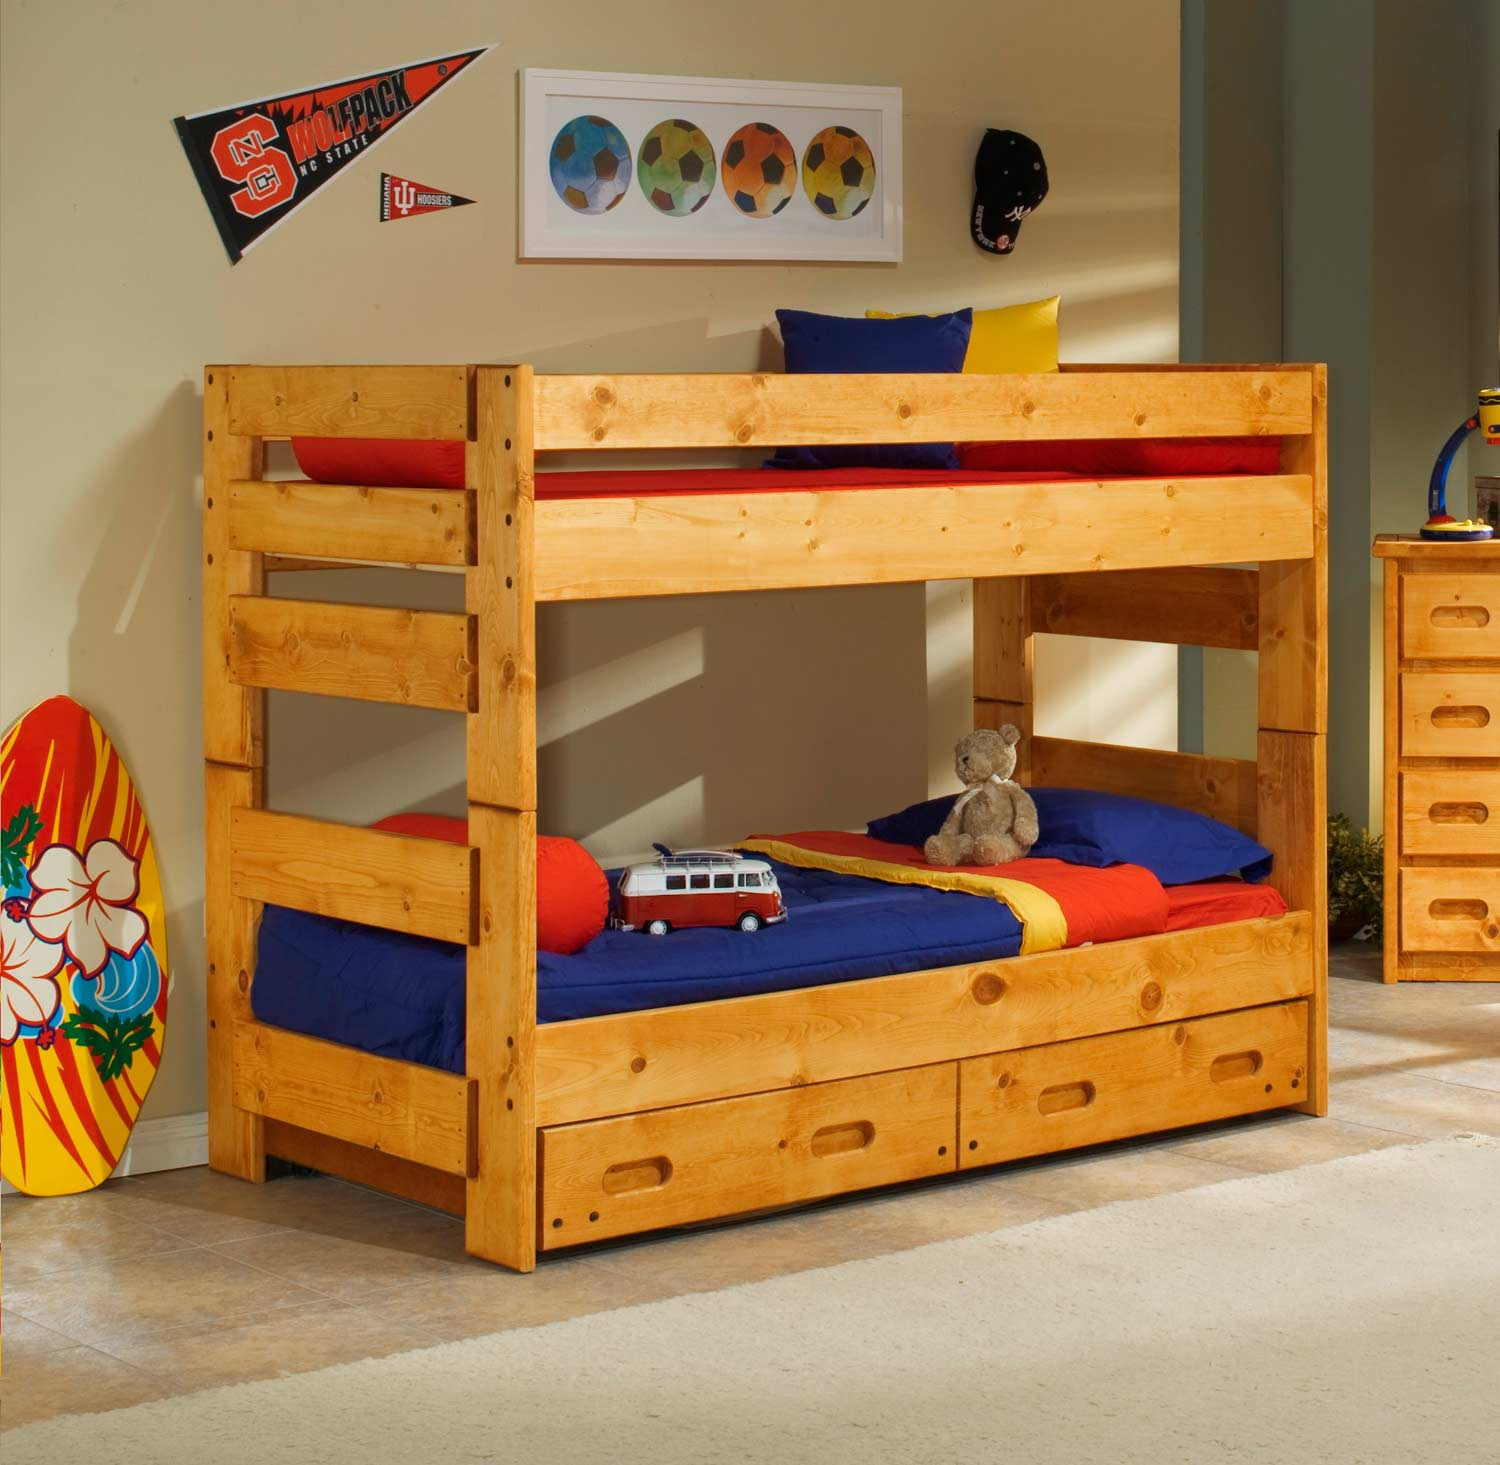 Chelsea Home 3544710-4711-T Twin Over Twin Bunk Bed with Trundle - Cinnamon